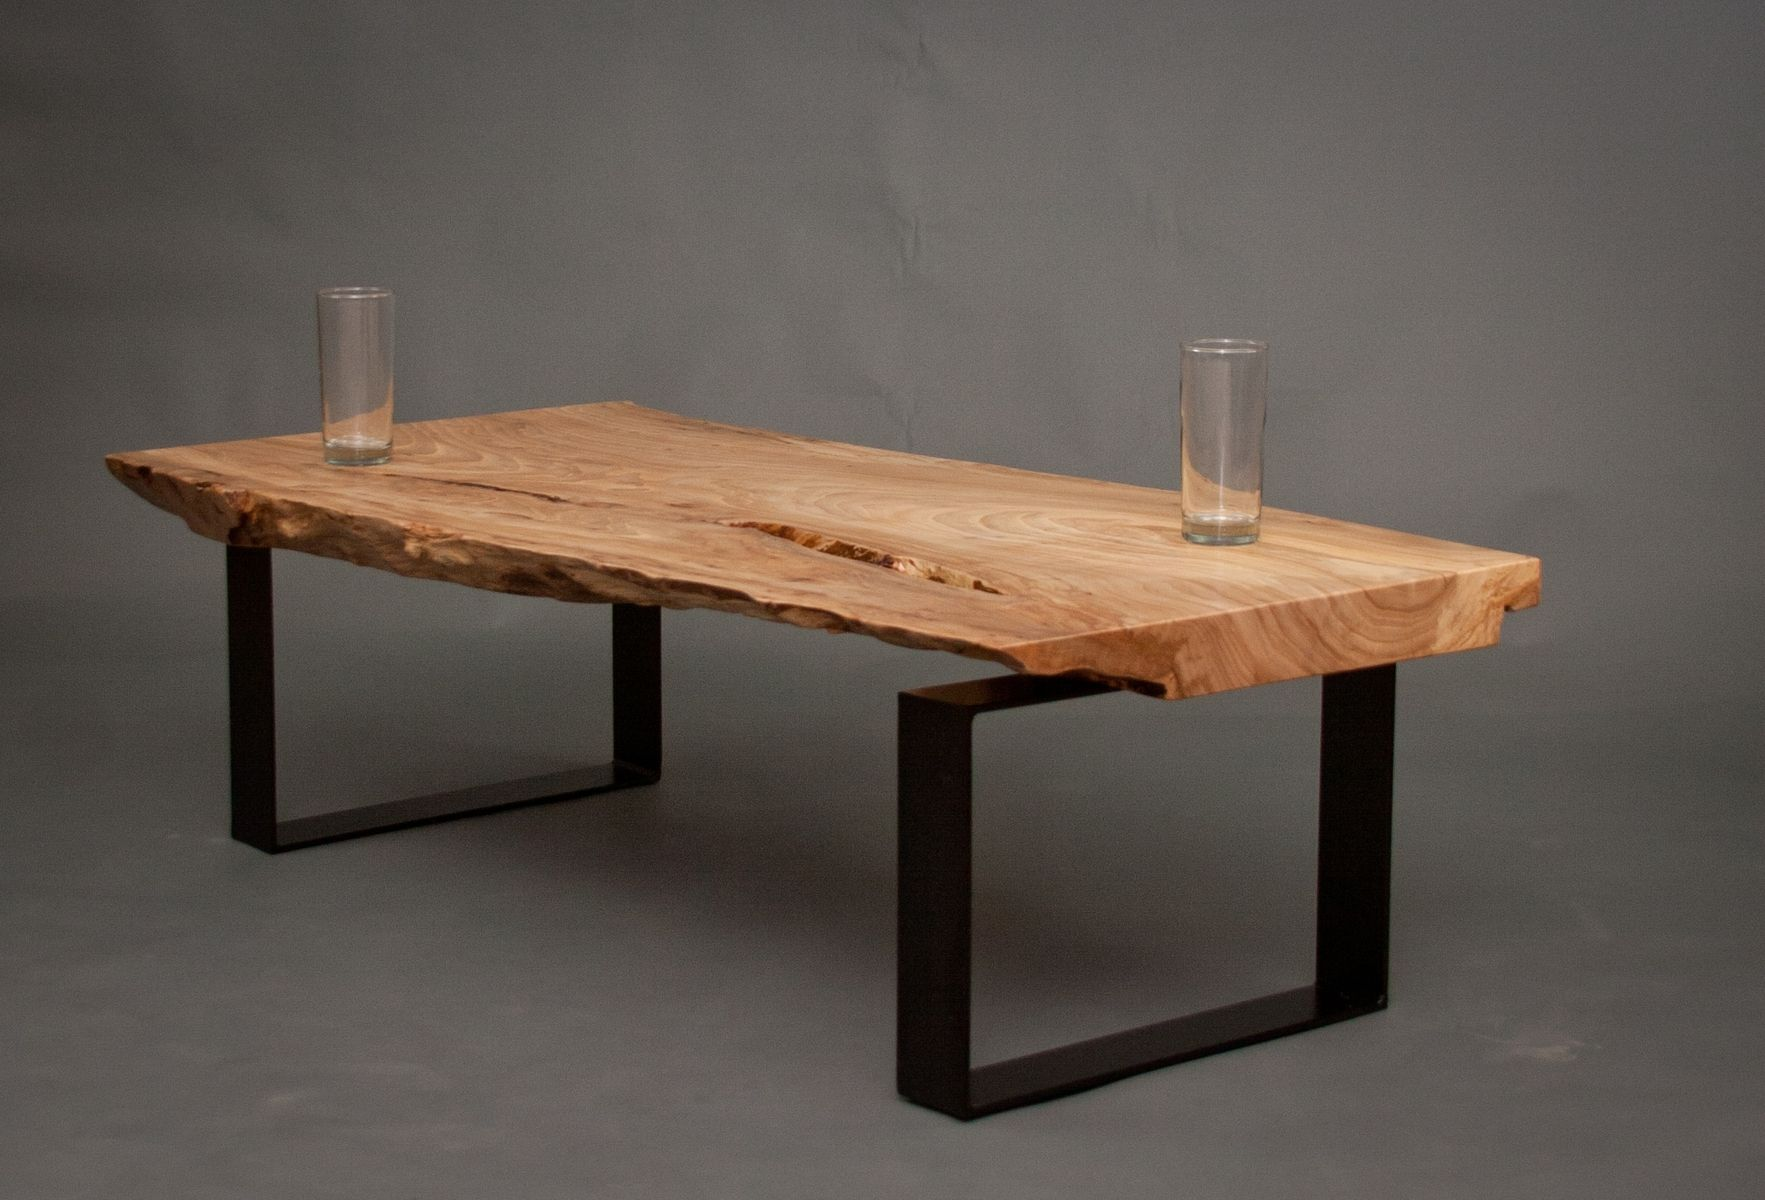 Ellington Reclaimed Elm Wood Coffee Table